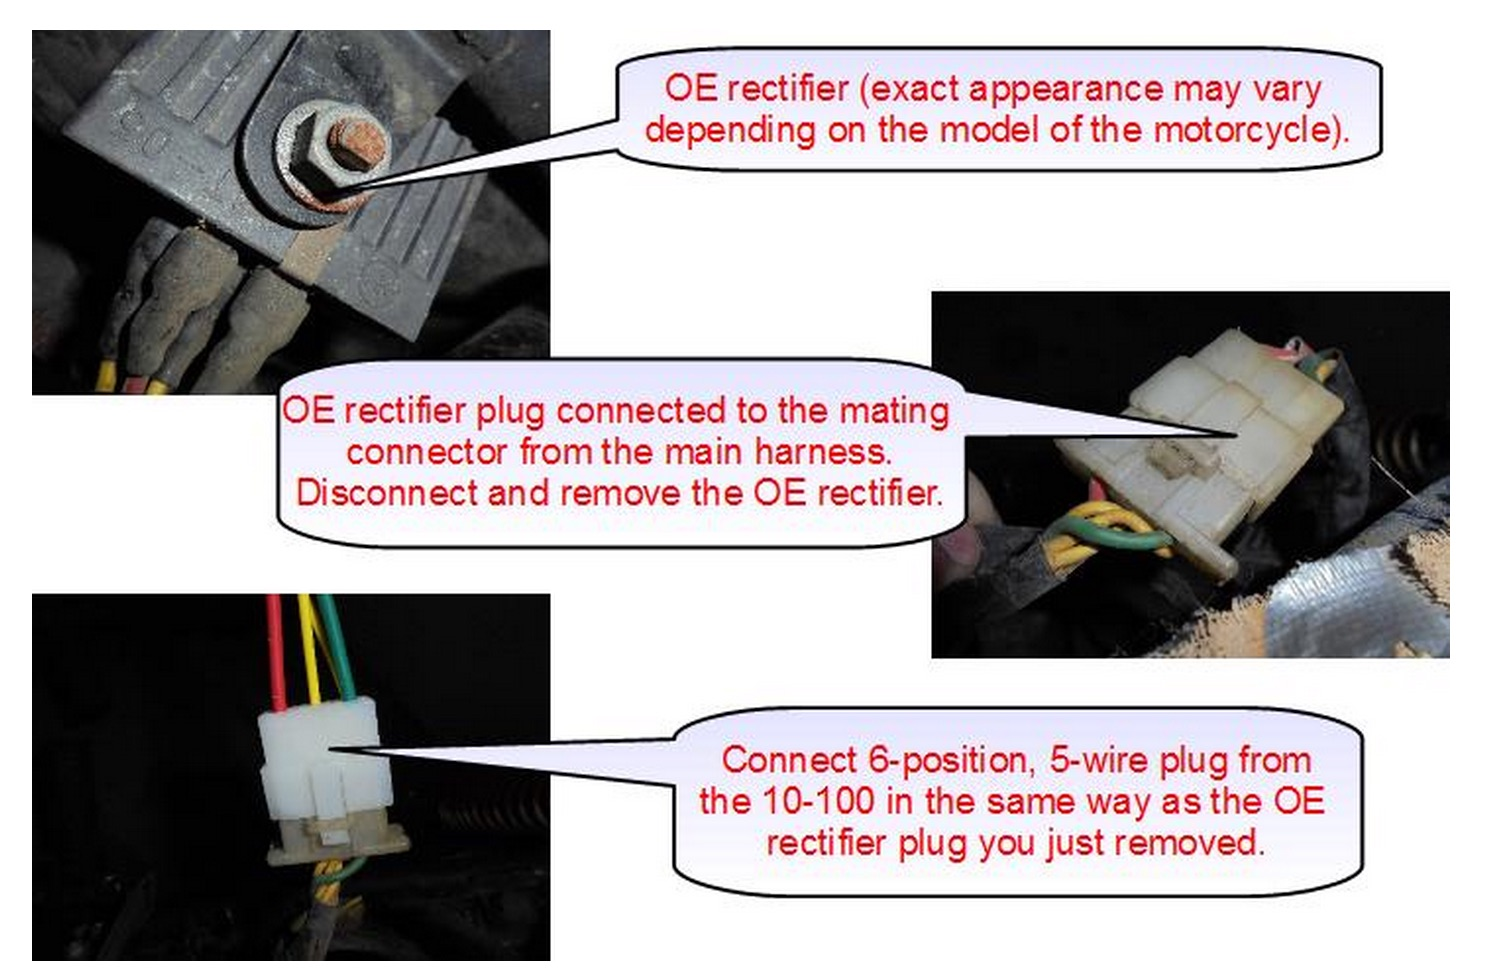 hight resolution of connecting the rectifier disconnect the 6 position 5 wire connector from the oe rectifier plug the identical connector on the 10 100 in its place